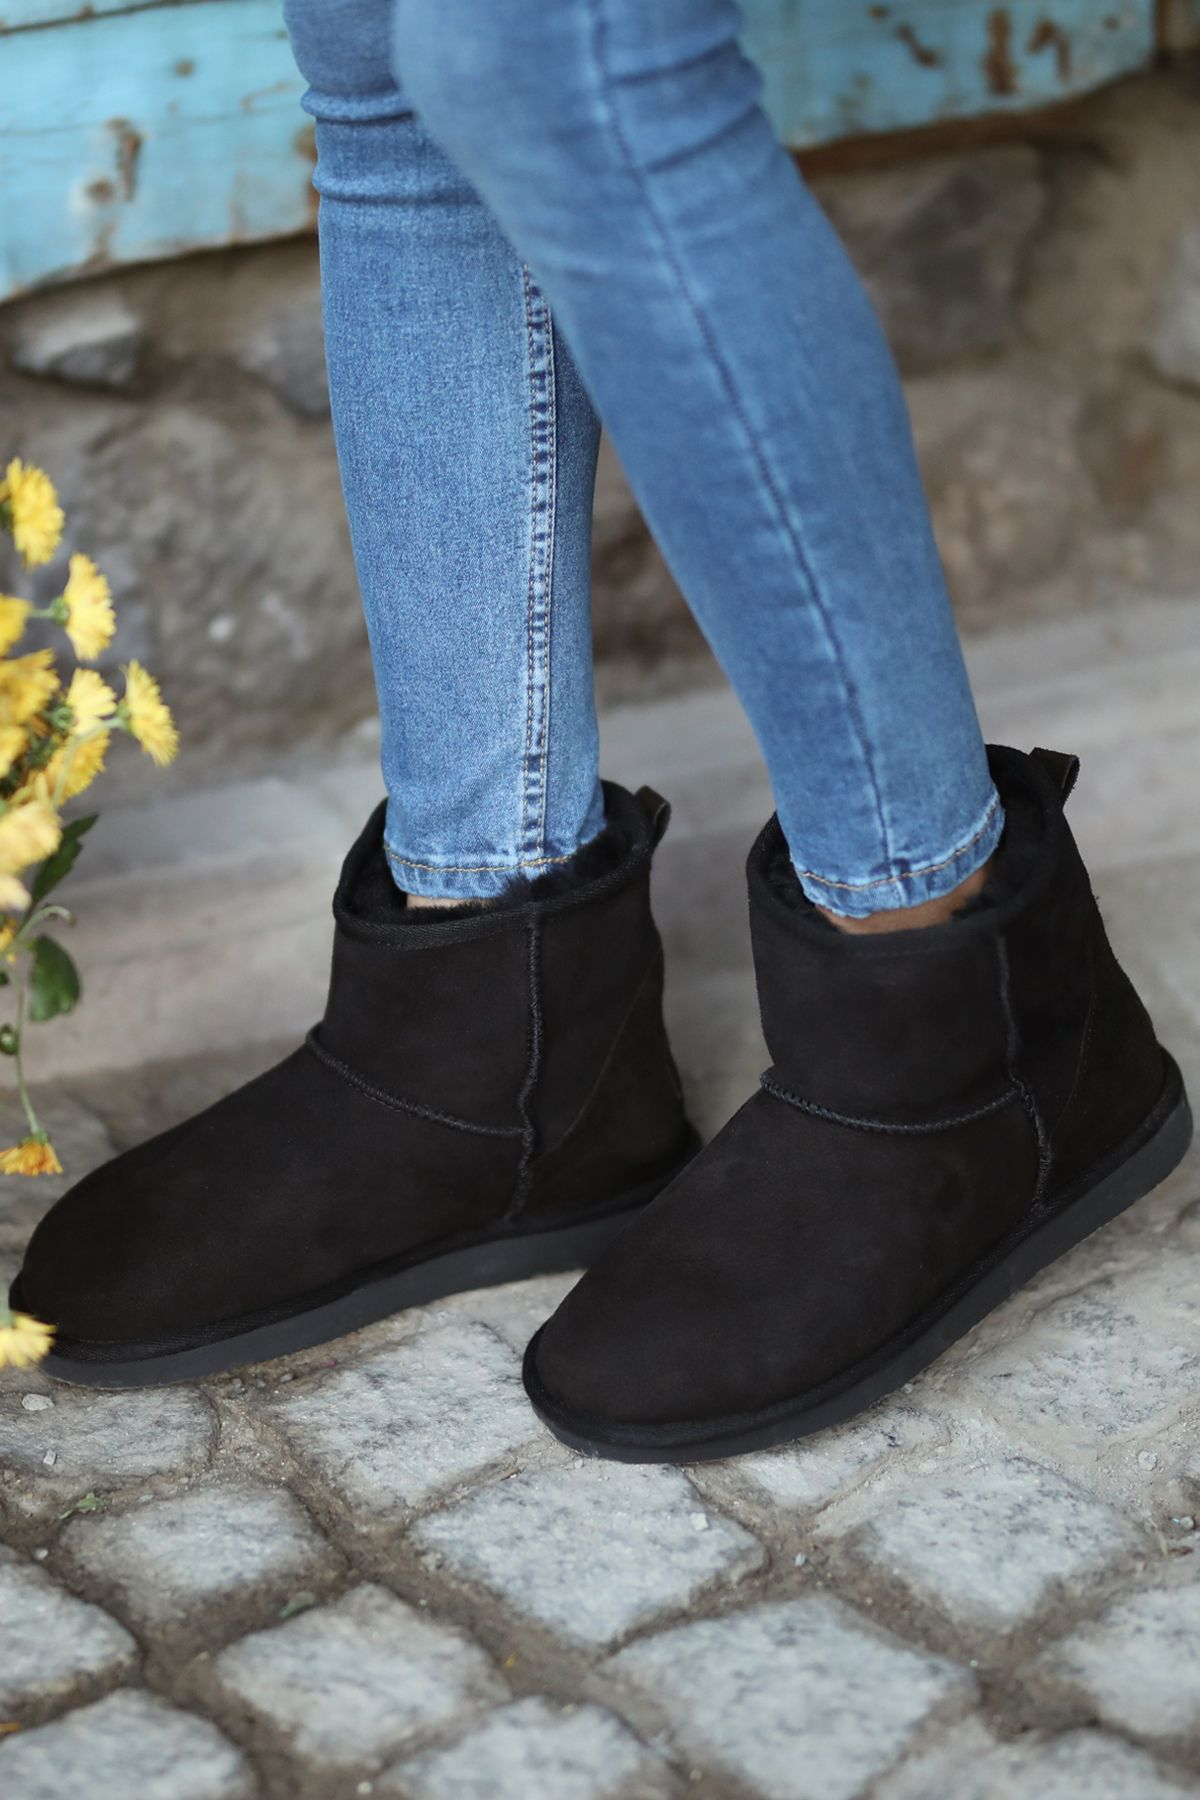 Pegia Short Women Boots From Genuine Suede And Sheepskin Fur 191021 Black